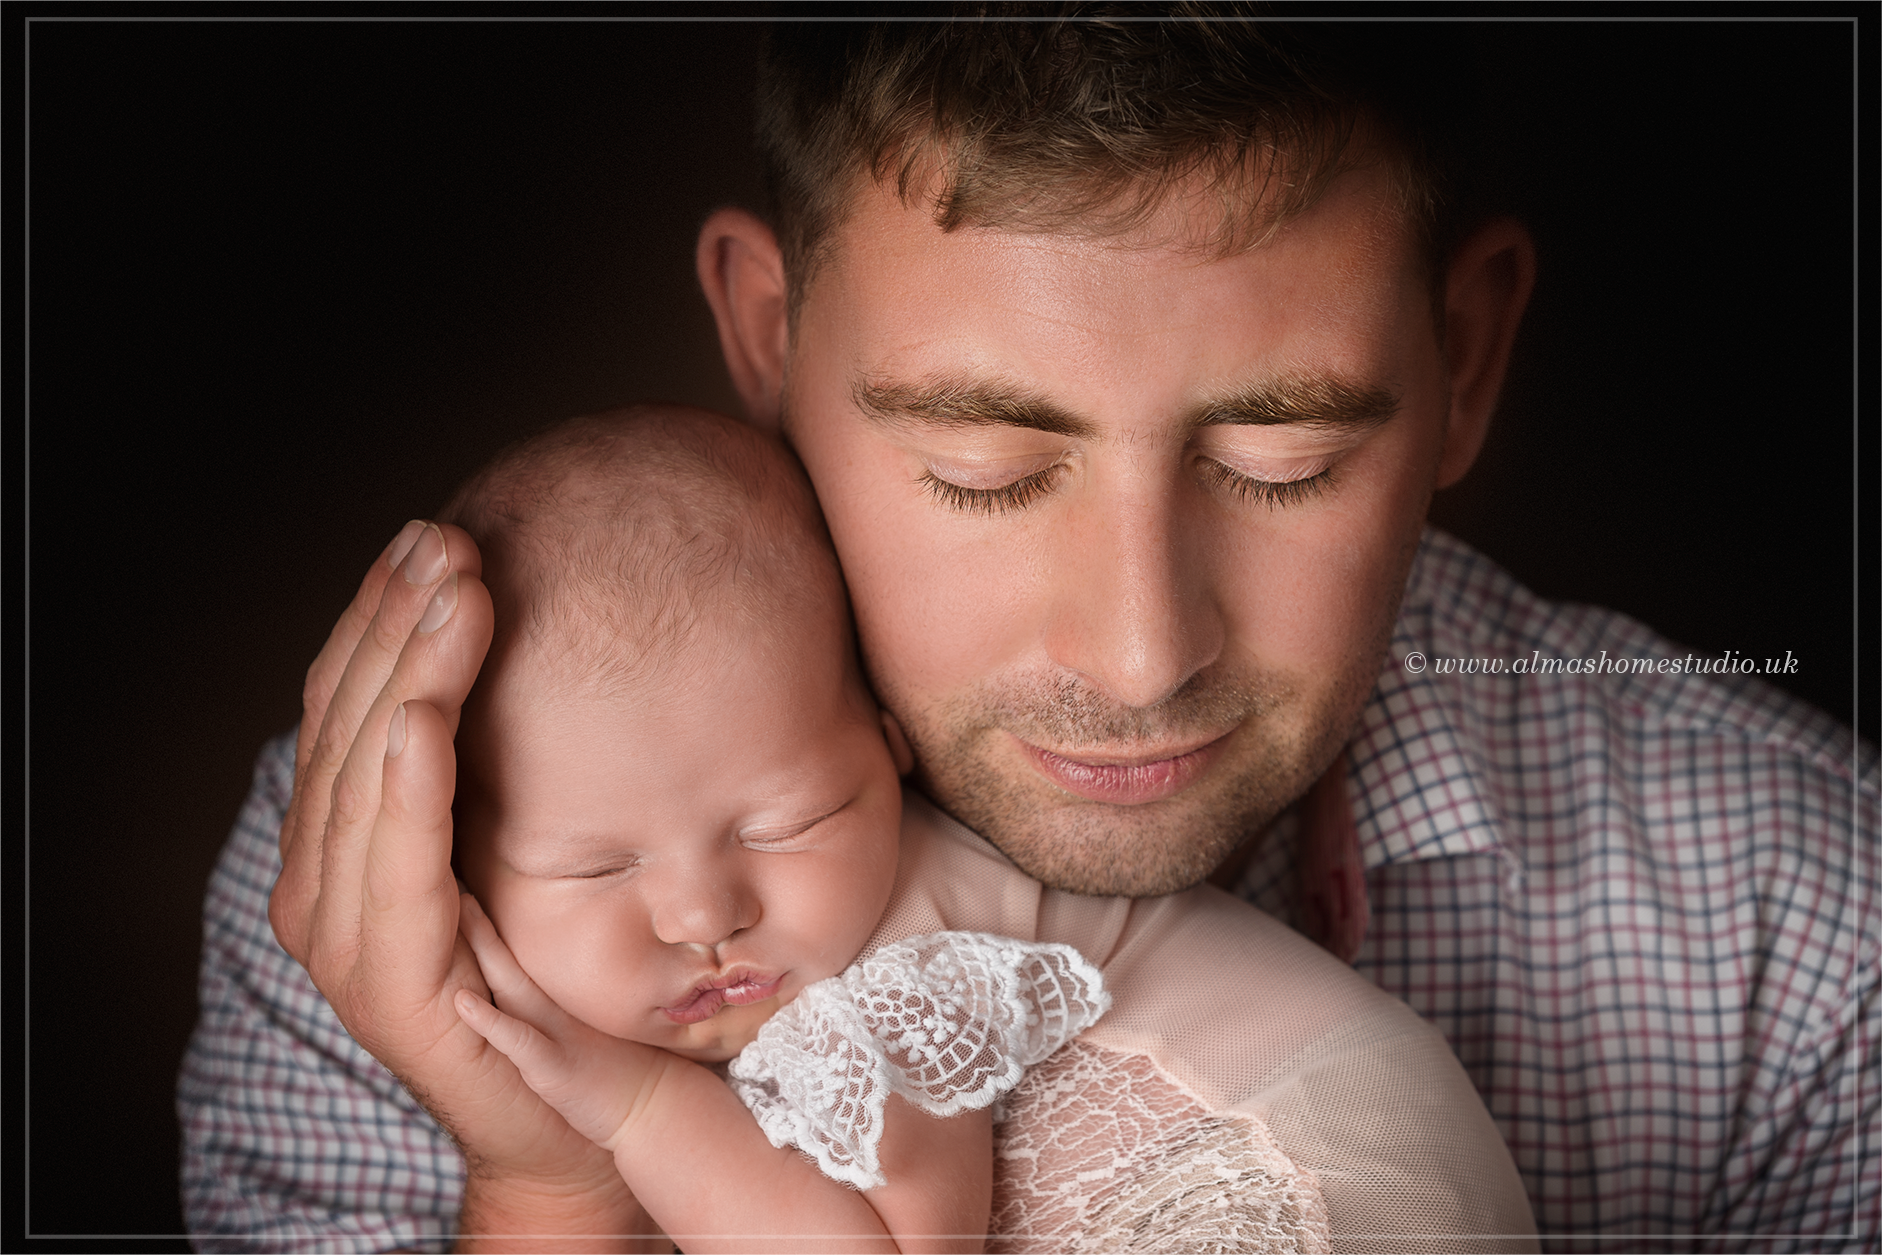 Alma's Home Studio - Newborn photographer based in Dorset